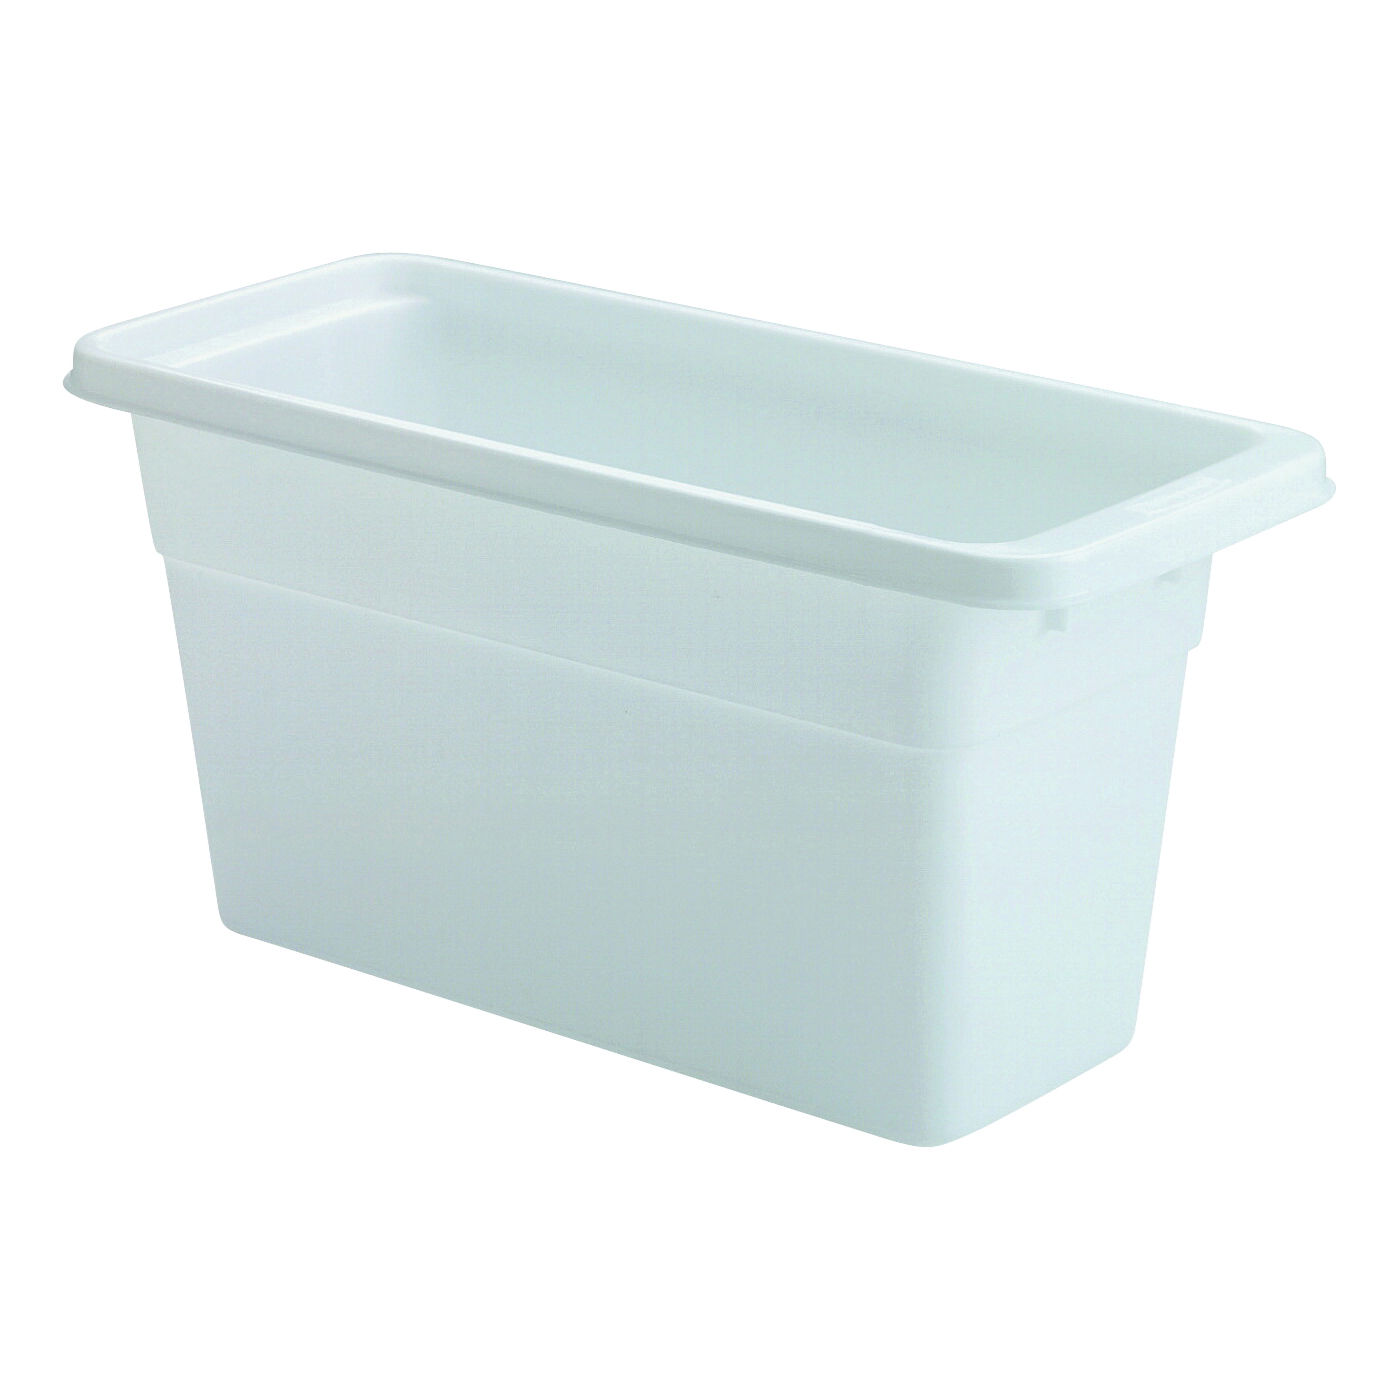 Picture of Rubbermaid 2862RDWHT Ice Cube Bin, 6-1/8 in L, 5-1/4 in W, 12-3/4 in H, Plastic, White, Dishwasher Safe: Yes